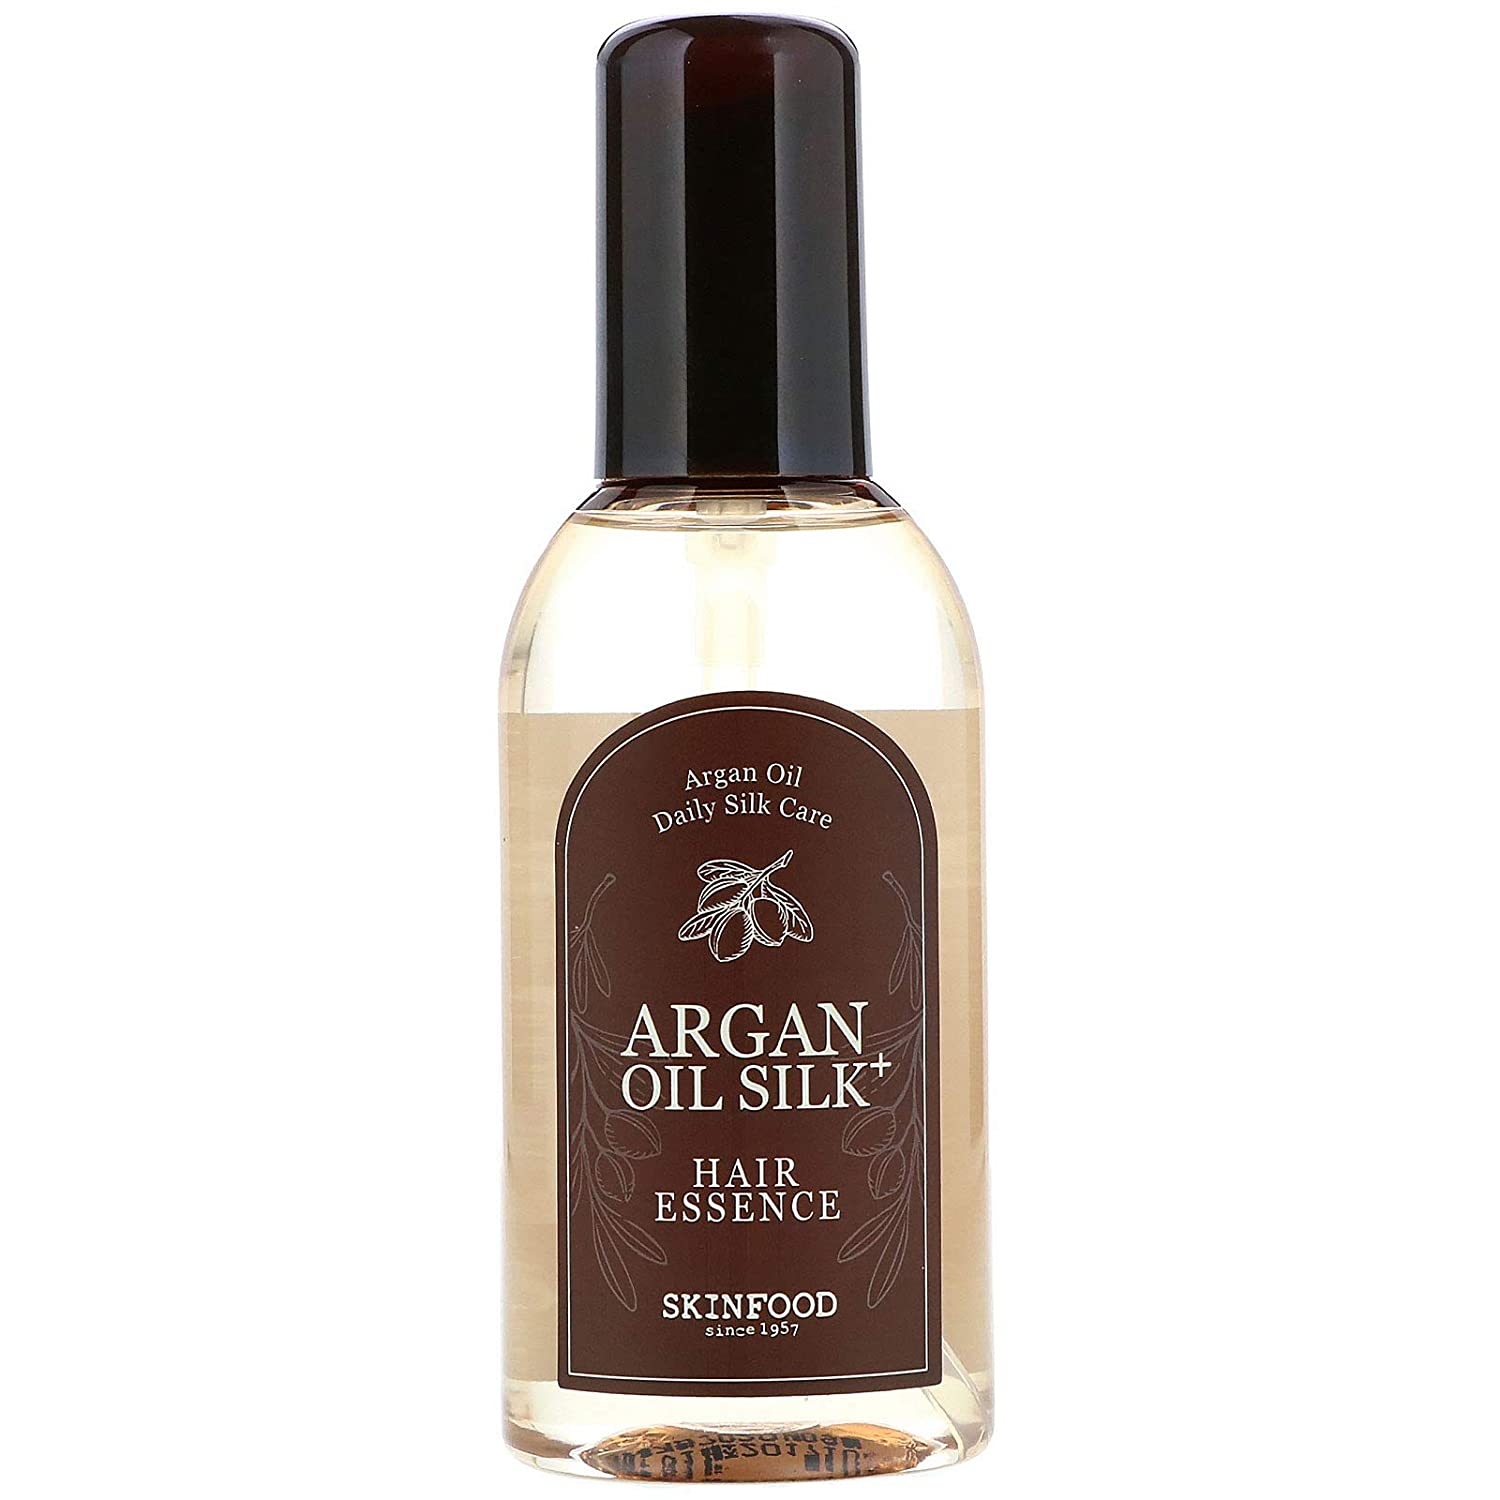 Buy SKINFOOD Argan Oil Silk Plus Waterful Curlup Hair Essence 125mL Online  at Low Prices in India - Amazon.in